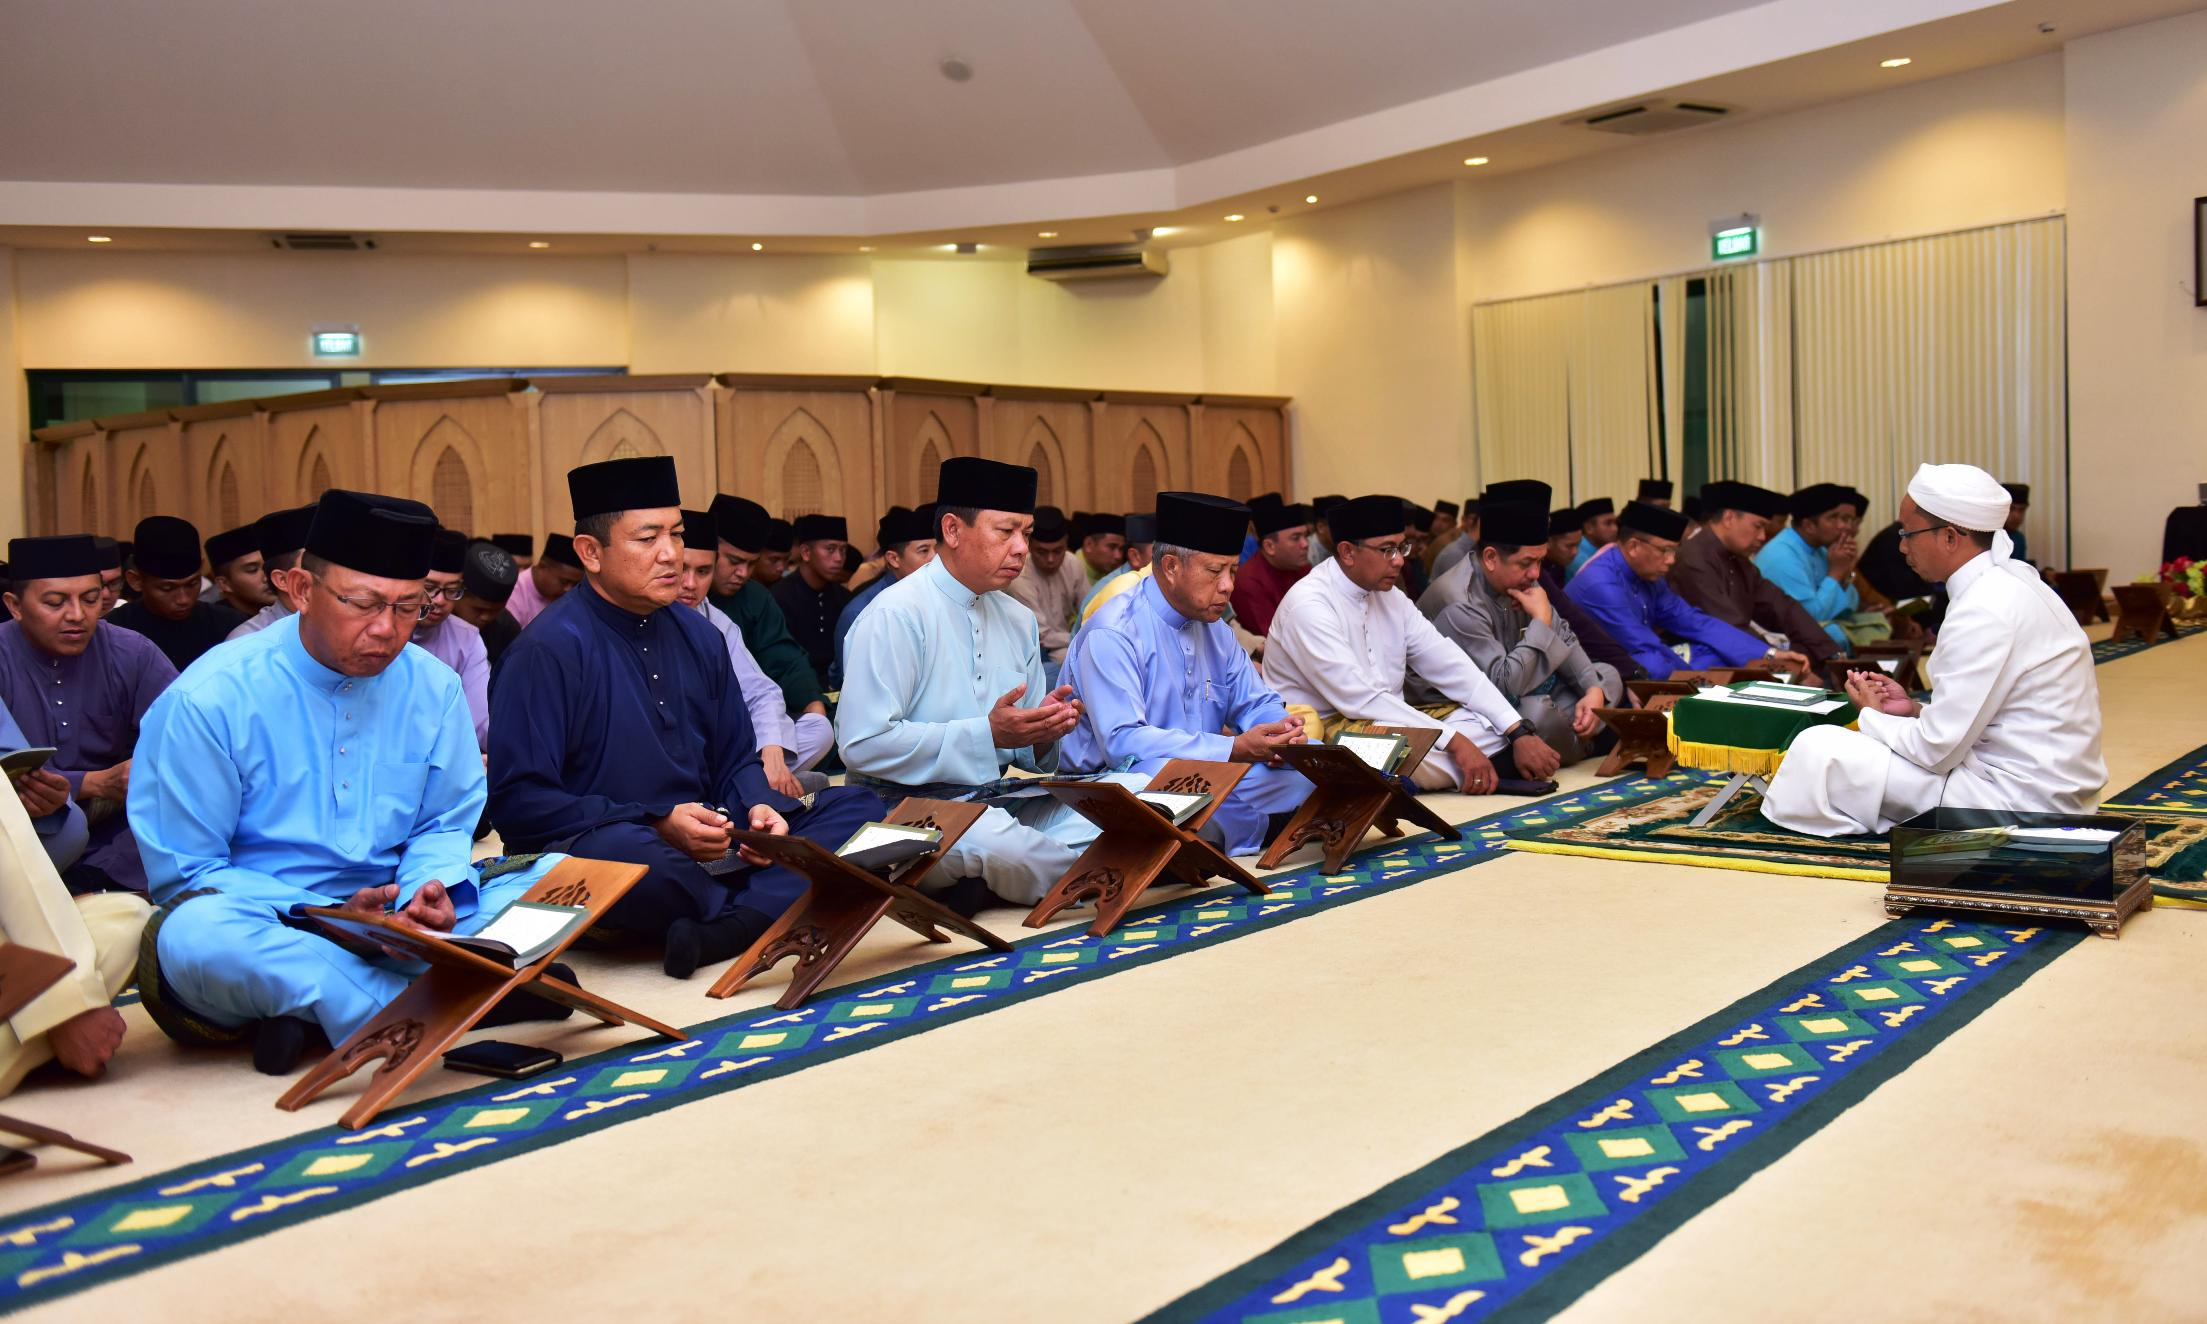 THANKSGIVING PRAYER CEREMONY TO MARK 44th BIRTHDAY OF HIS ROYAL HIGHNESS THE CROWN PRINCE